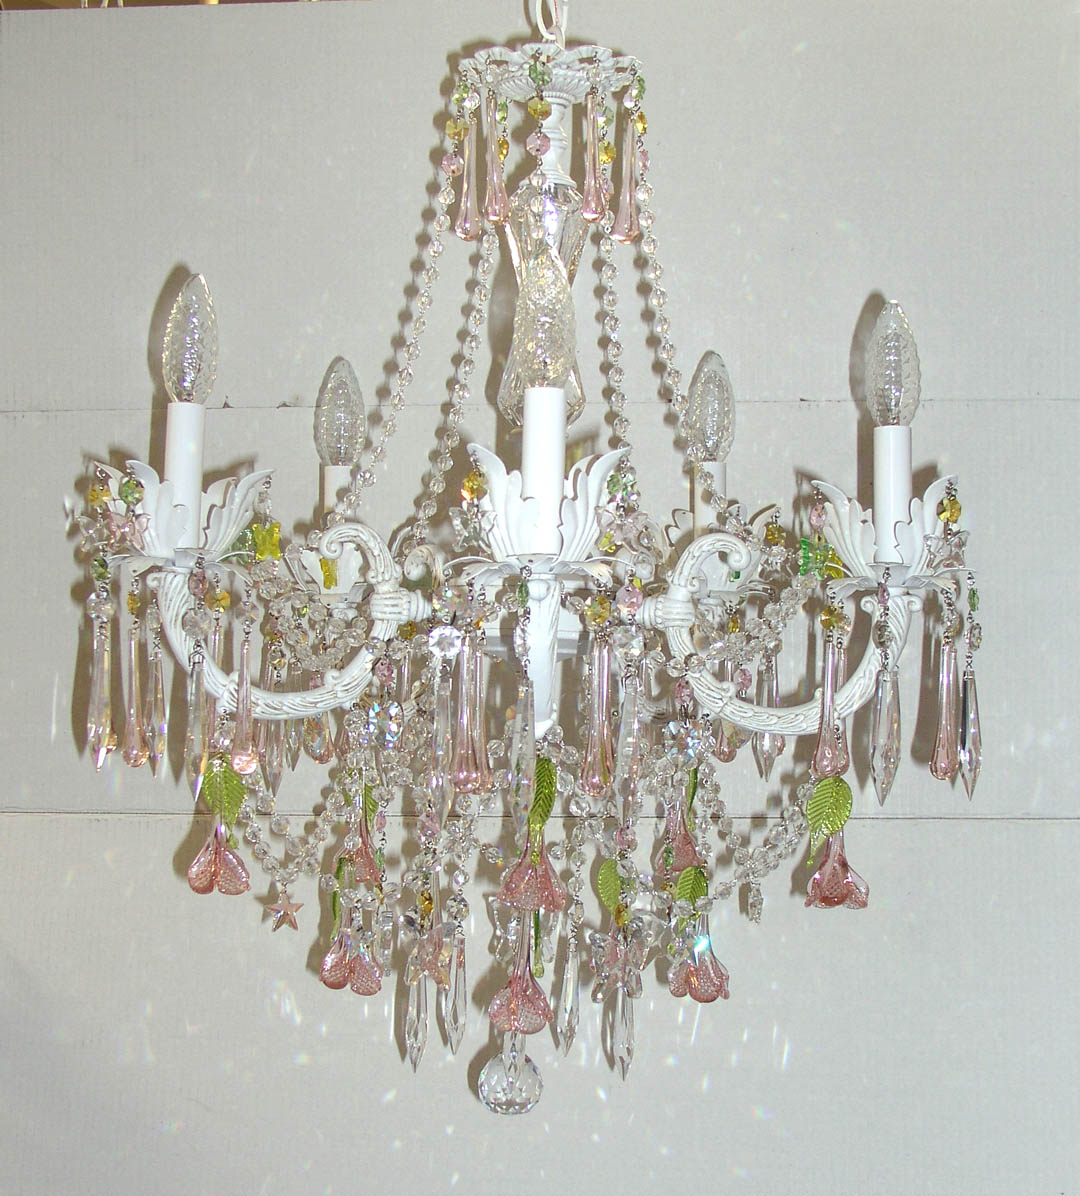 wall rock of best sconces hd pictures image wallpaper ideas crystal home sconce chandelier